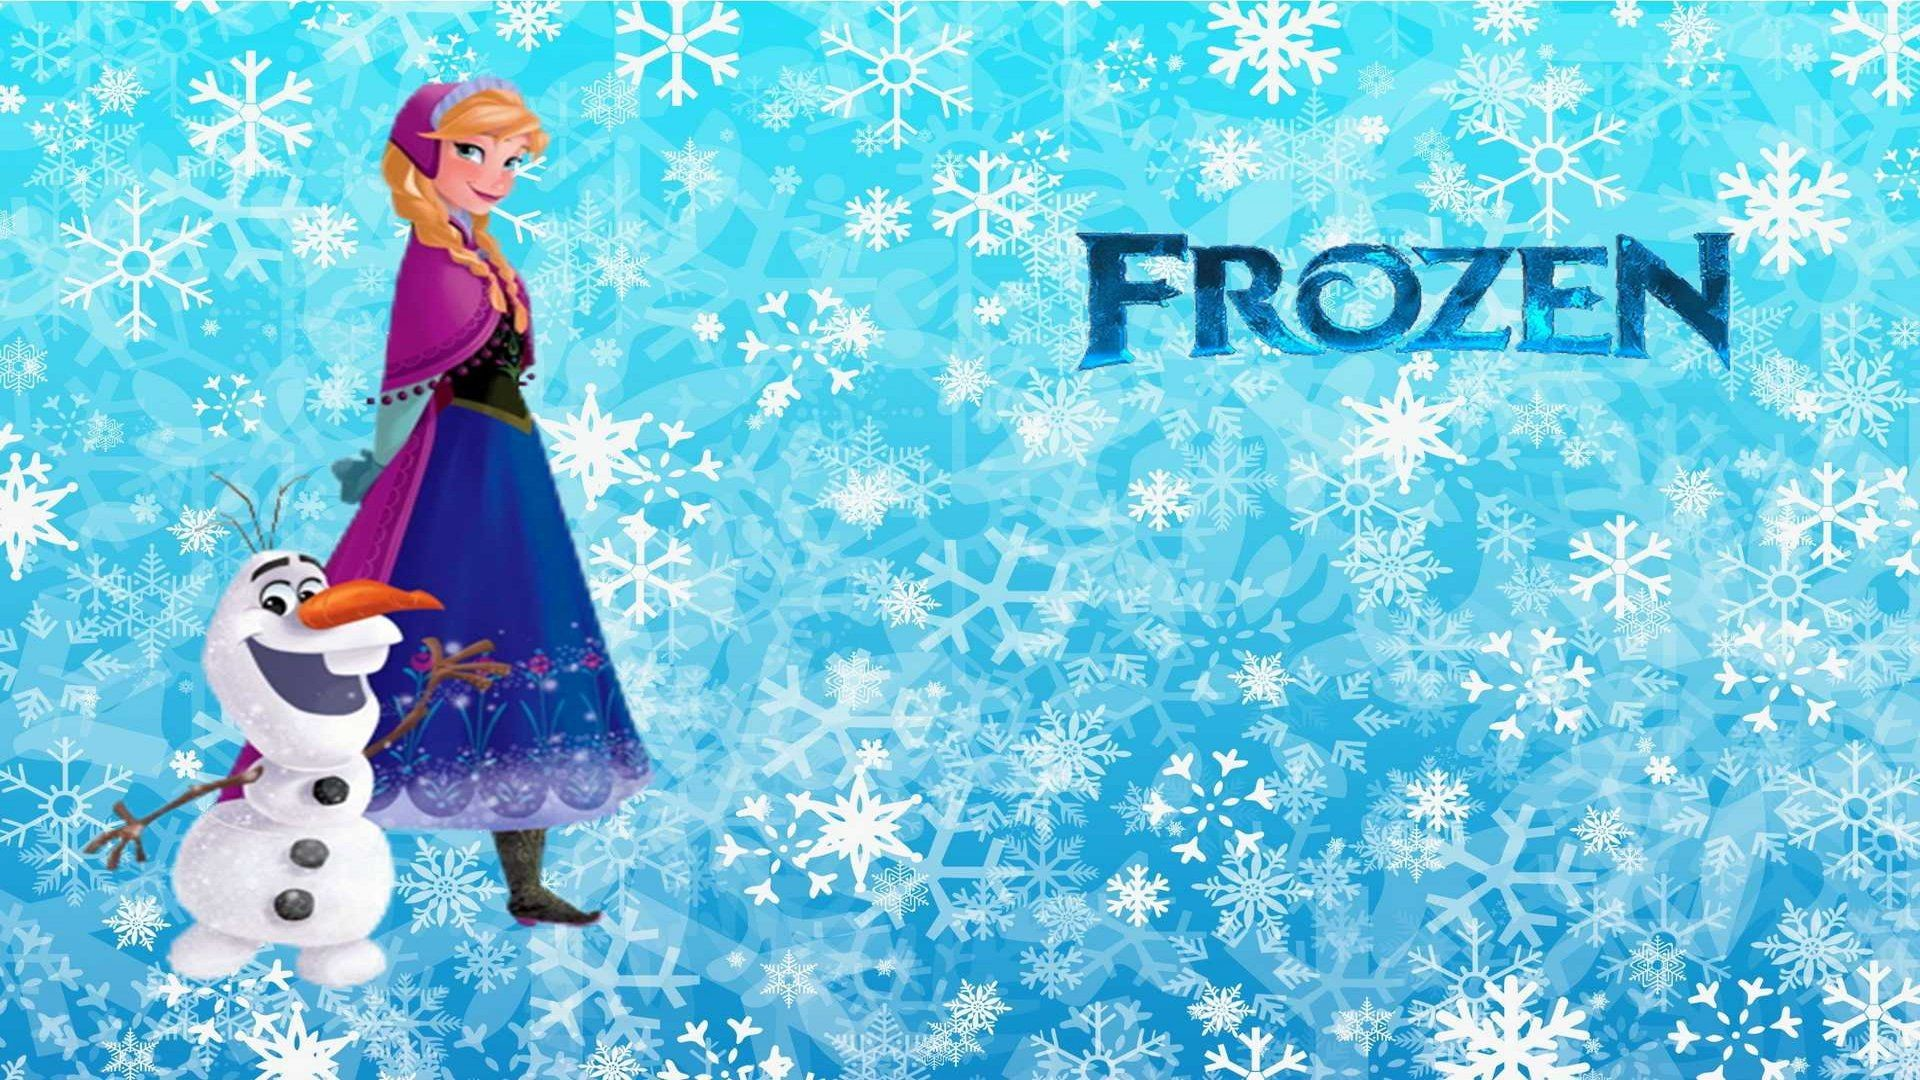 Res: 1920x1080, Anna Frozen Movie Wallpaper | Free Desk Wallpapers